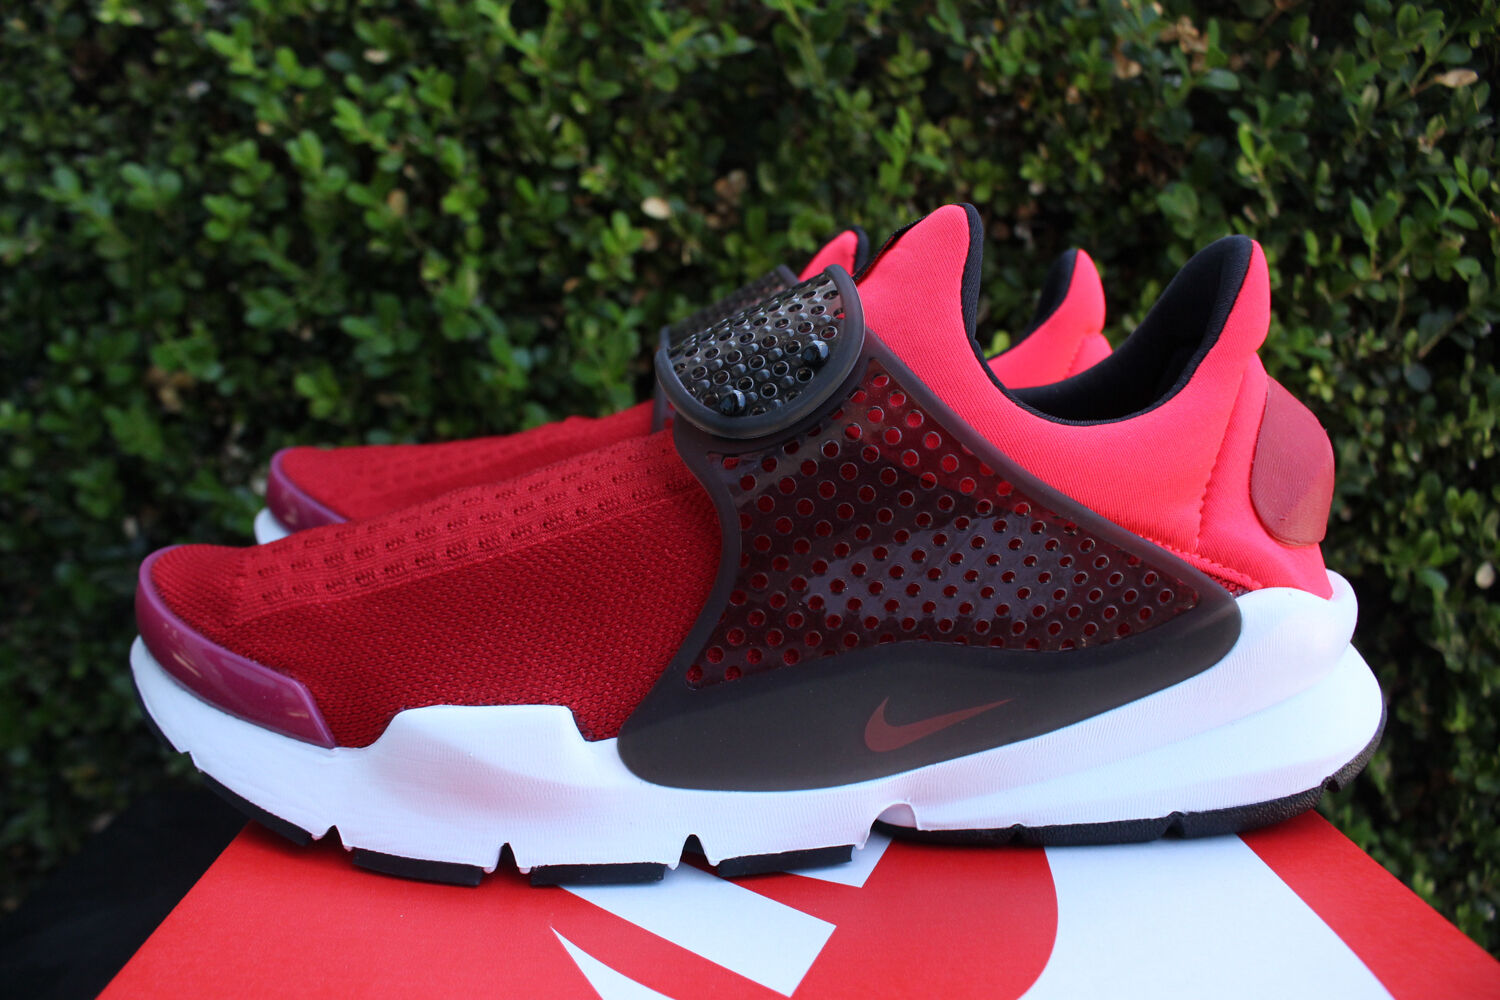 NIKE SOCK DART KJCRD SZ 9 GYM RED SOLAR RED SIREN RED SLIP ON 819686 602